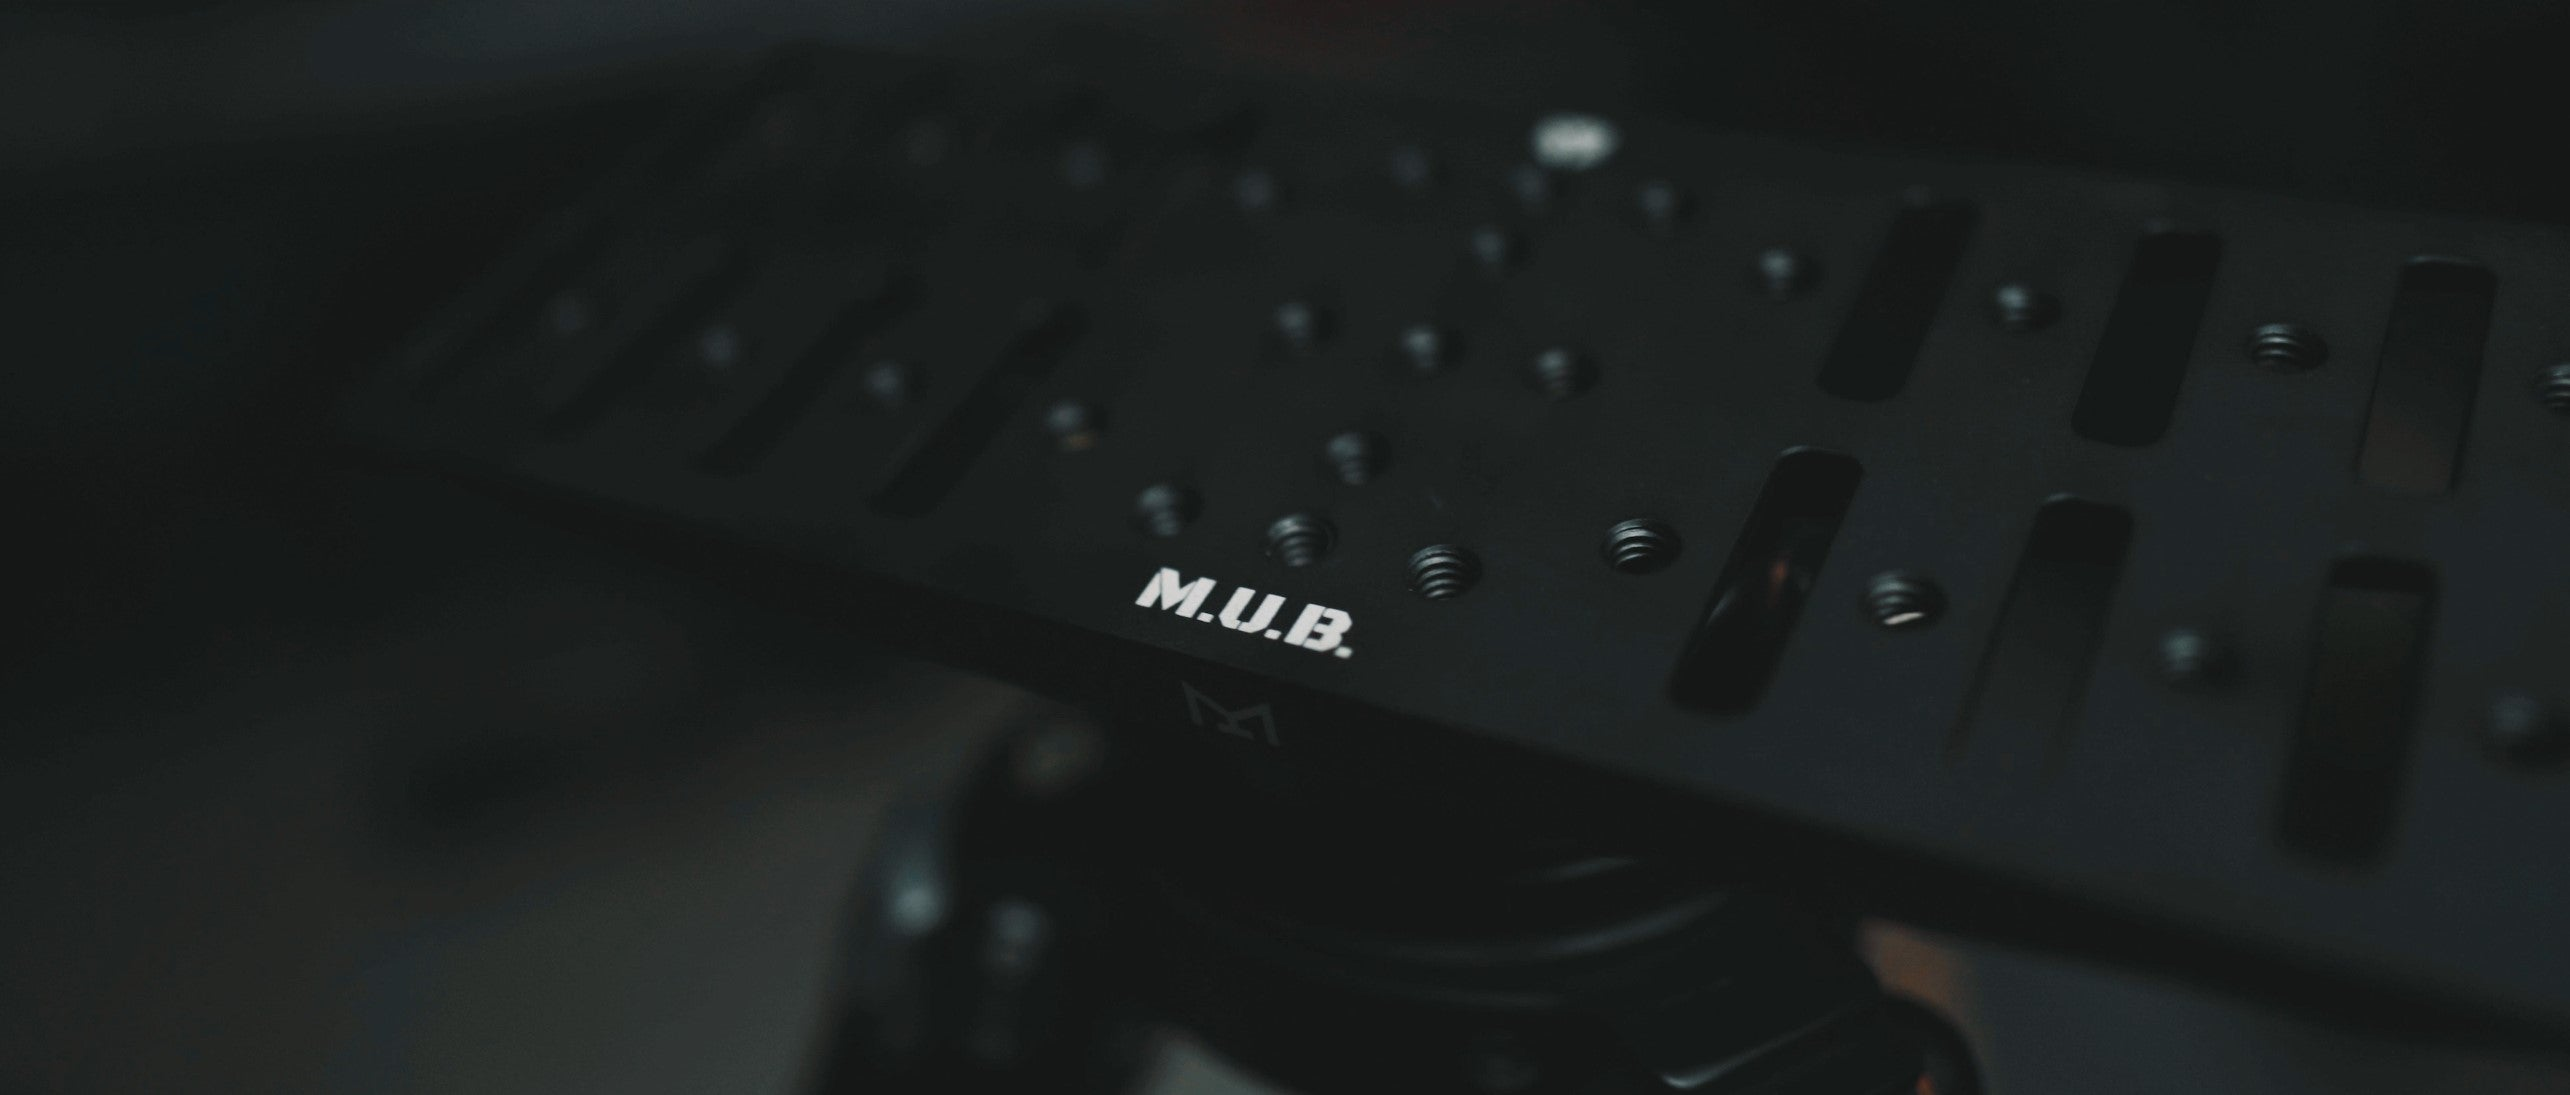 The M.U.B. MOD DOS Tactical Plate